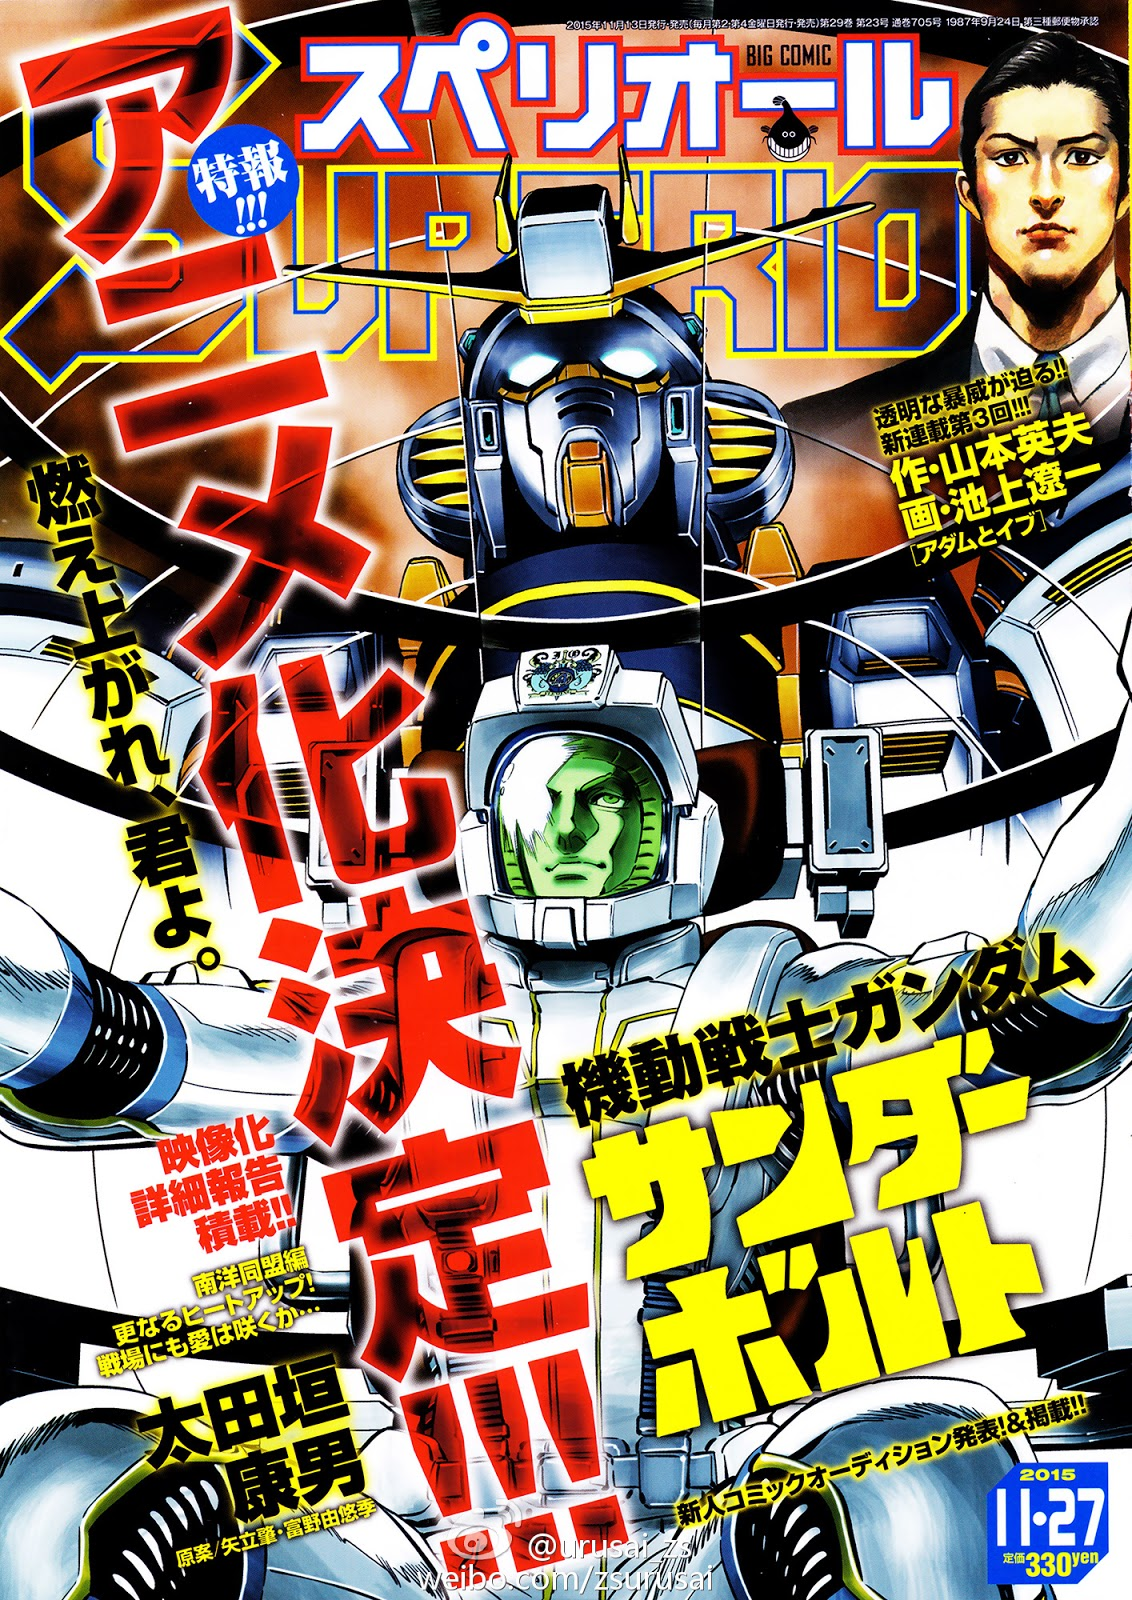 Mobile Suit Gundam Thunderbolt - Anime Adaptation Info, Video & Images [Updated 1/18/16]